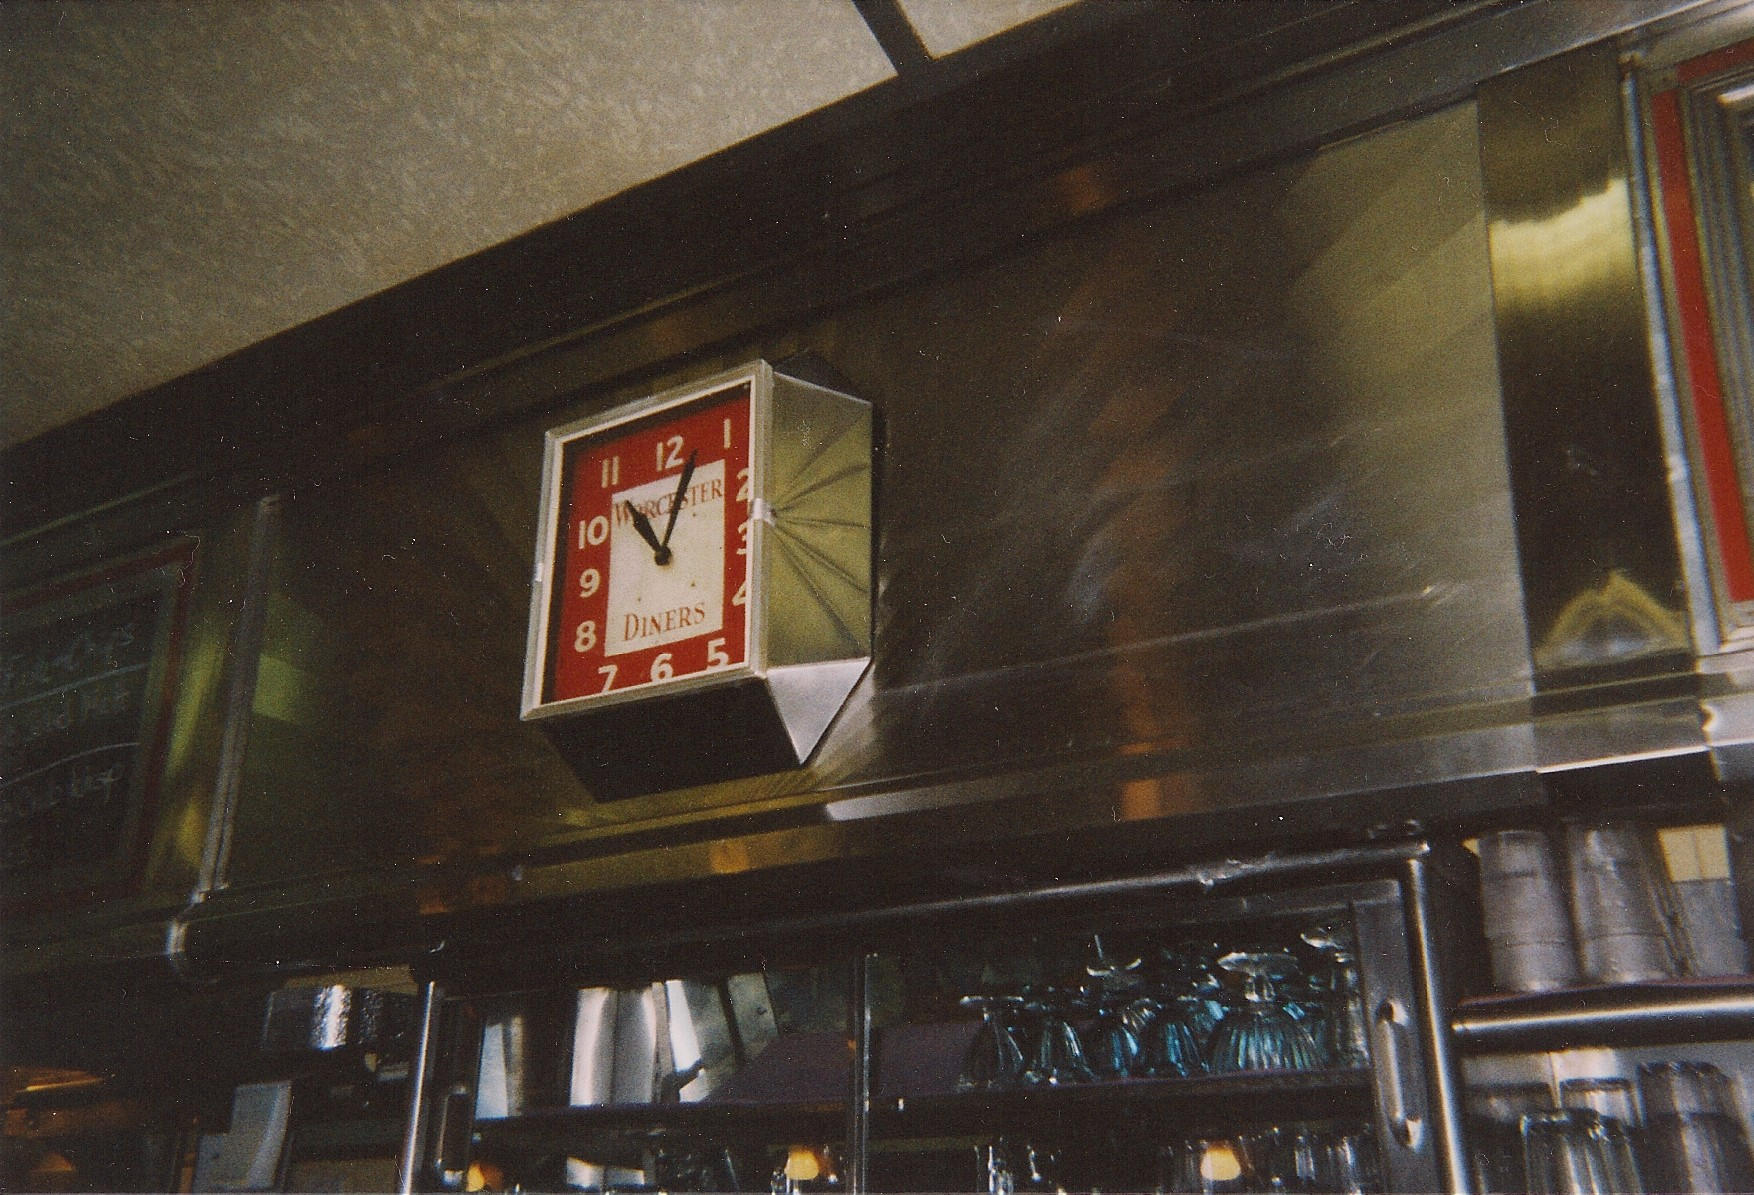 Clock in Jigger's Diner